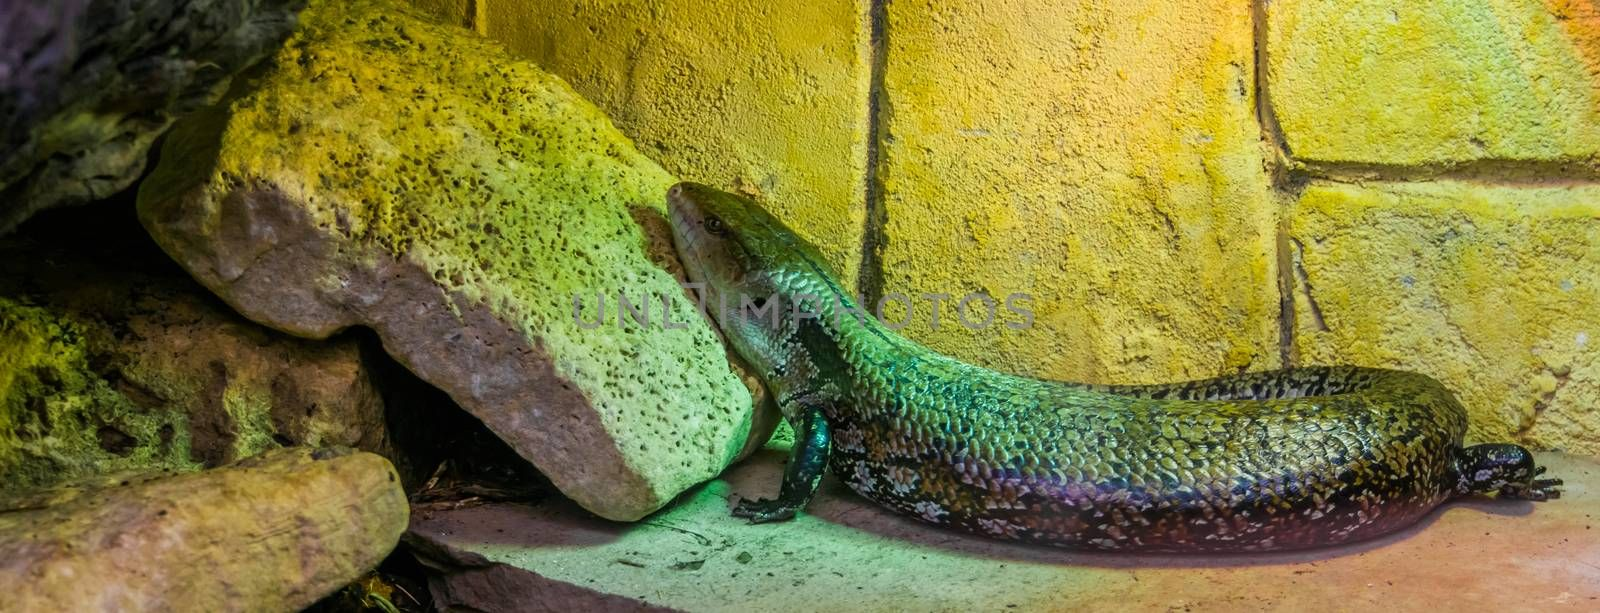 common blue tongued skink in closeup, tropical lizard from Australia and Indonesia, popular pet in in herpetoculture